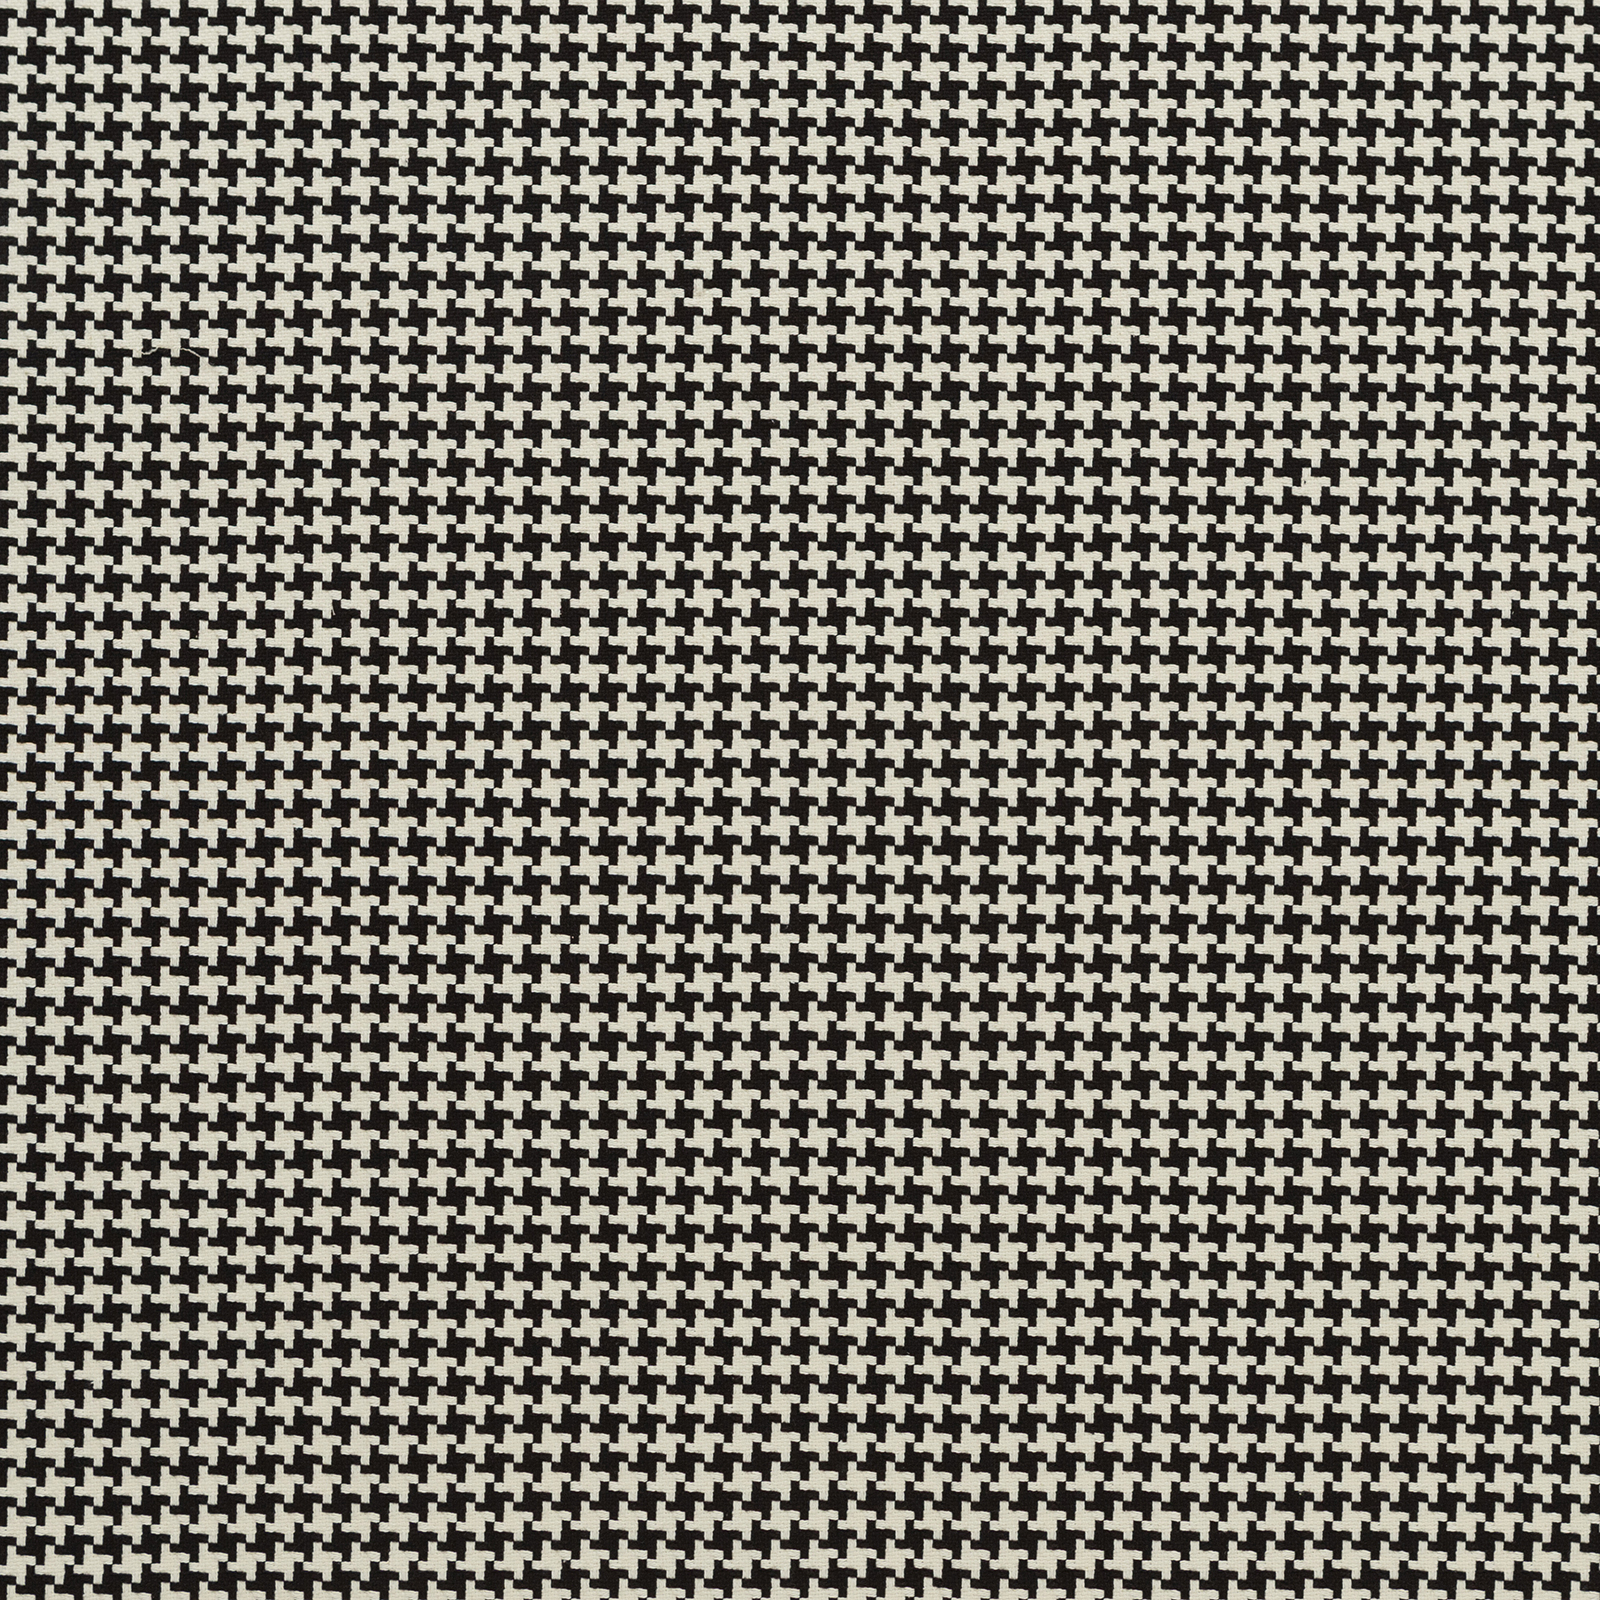 Licorice Black And White Houndstooth 100 Cotton Upholstery Fabric